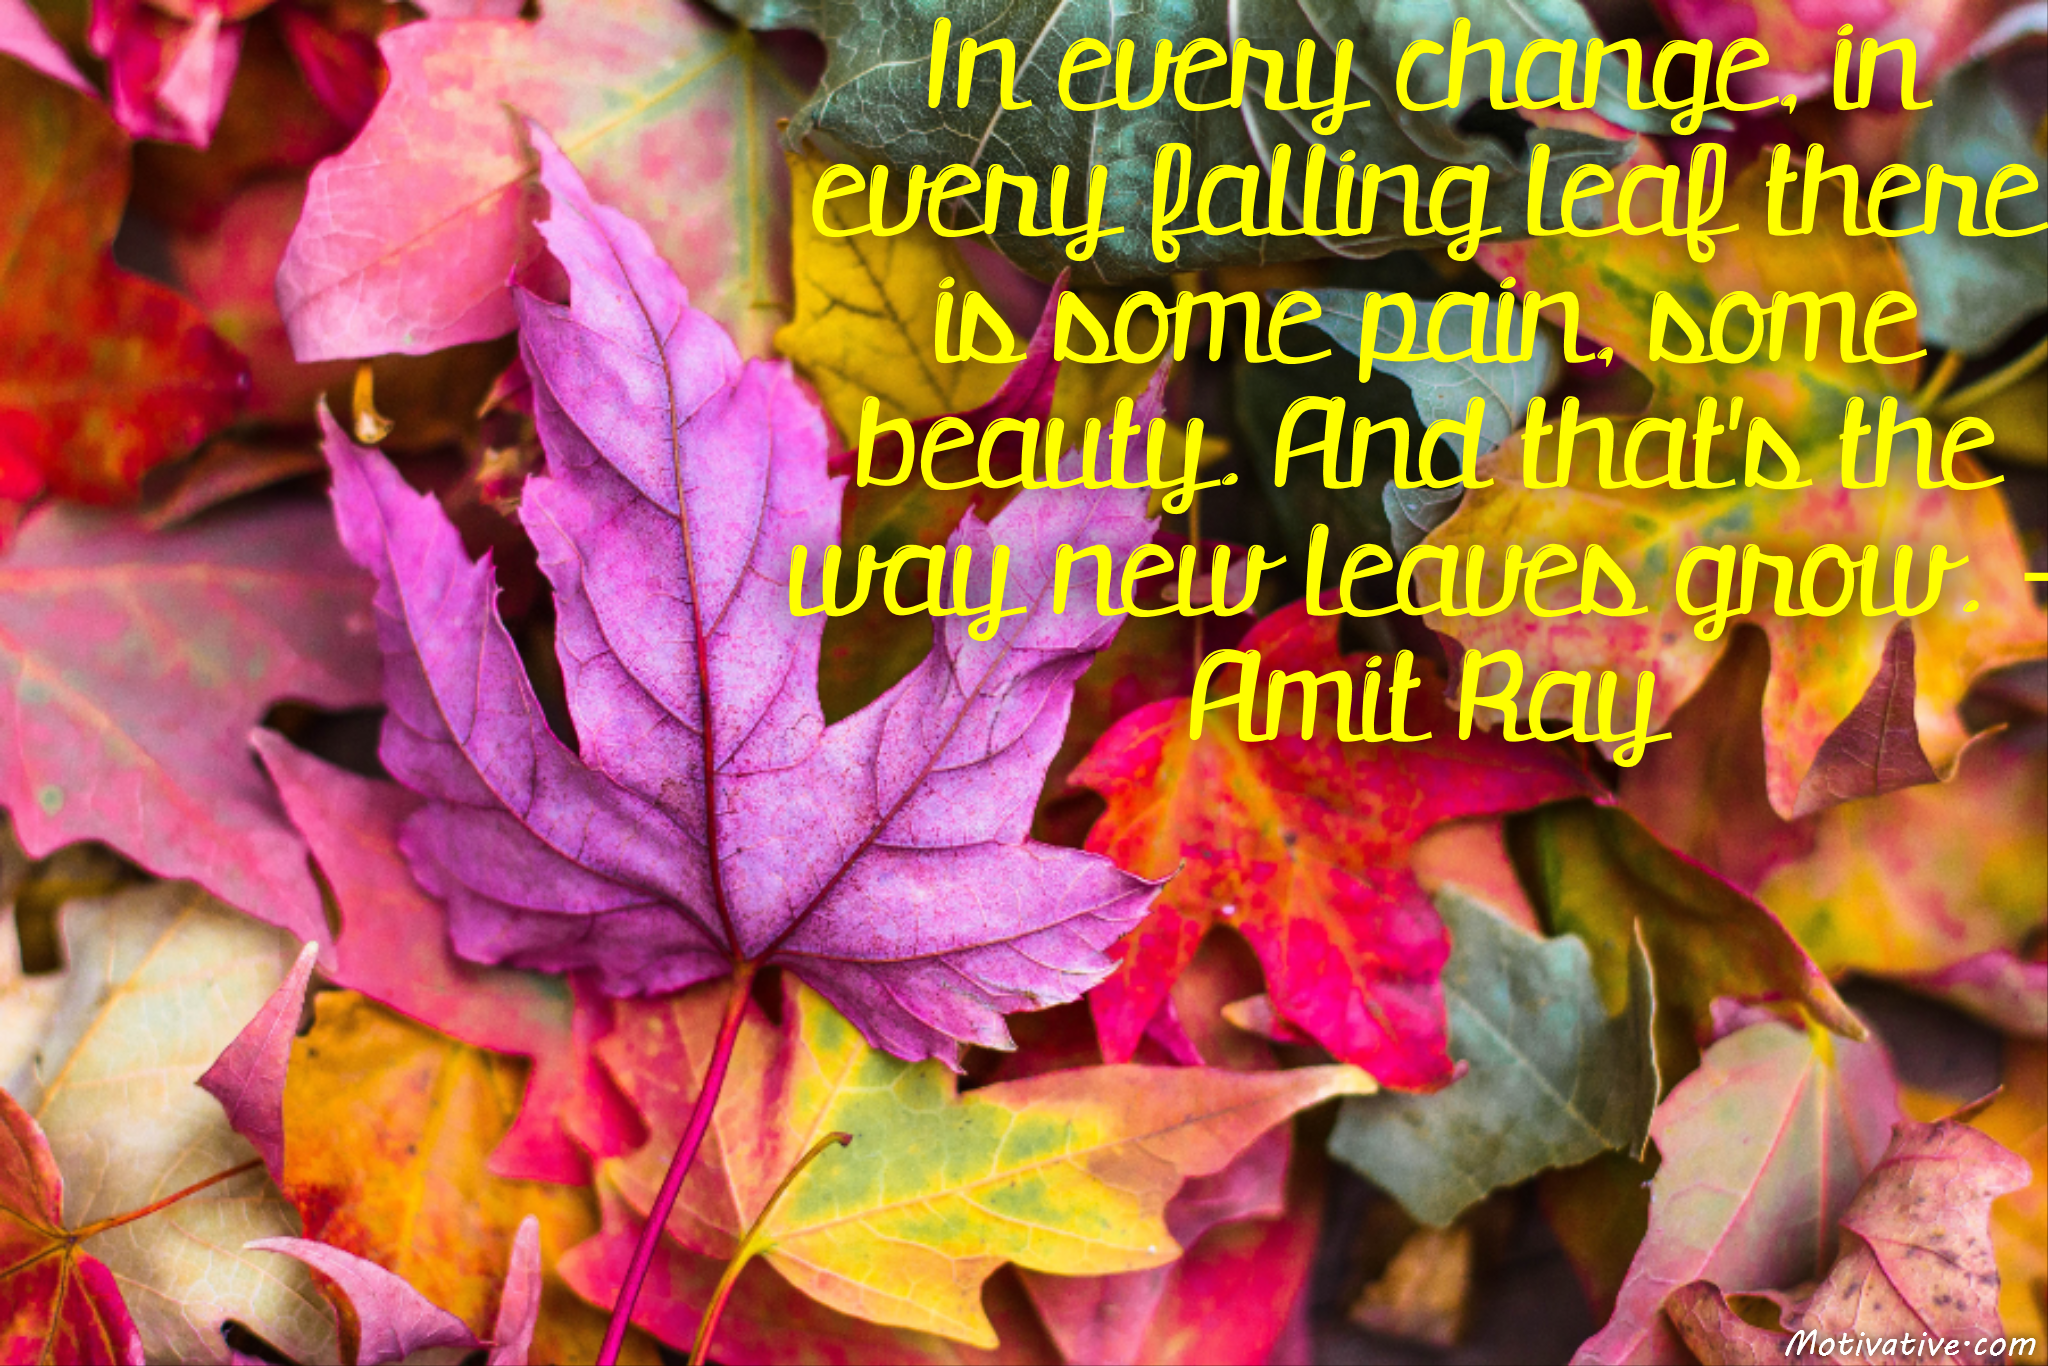 In every change, in every falling leaf there is some pain, some beauty. And that's the way new leaves grow. – Amit Ray